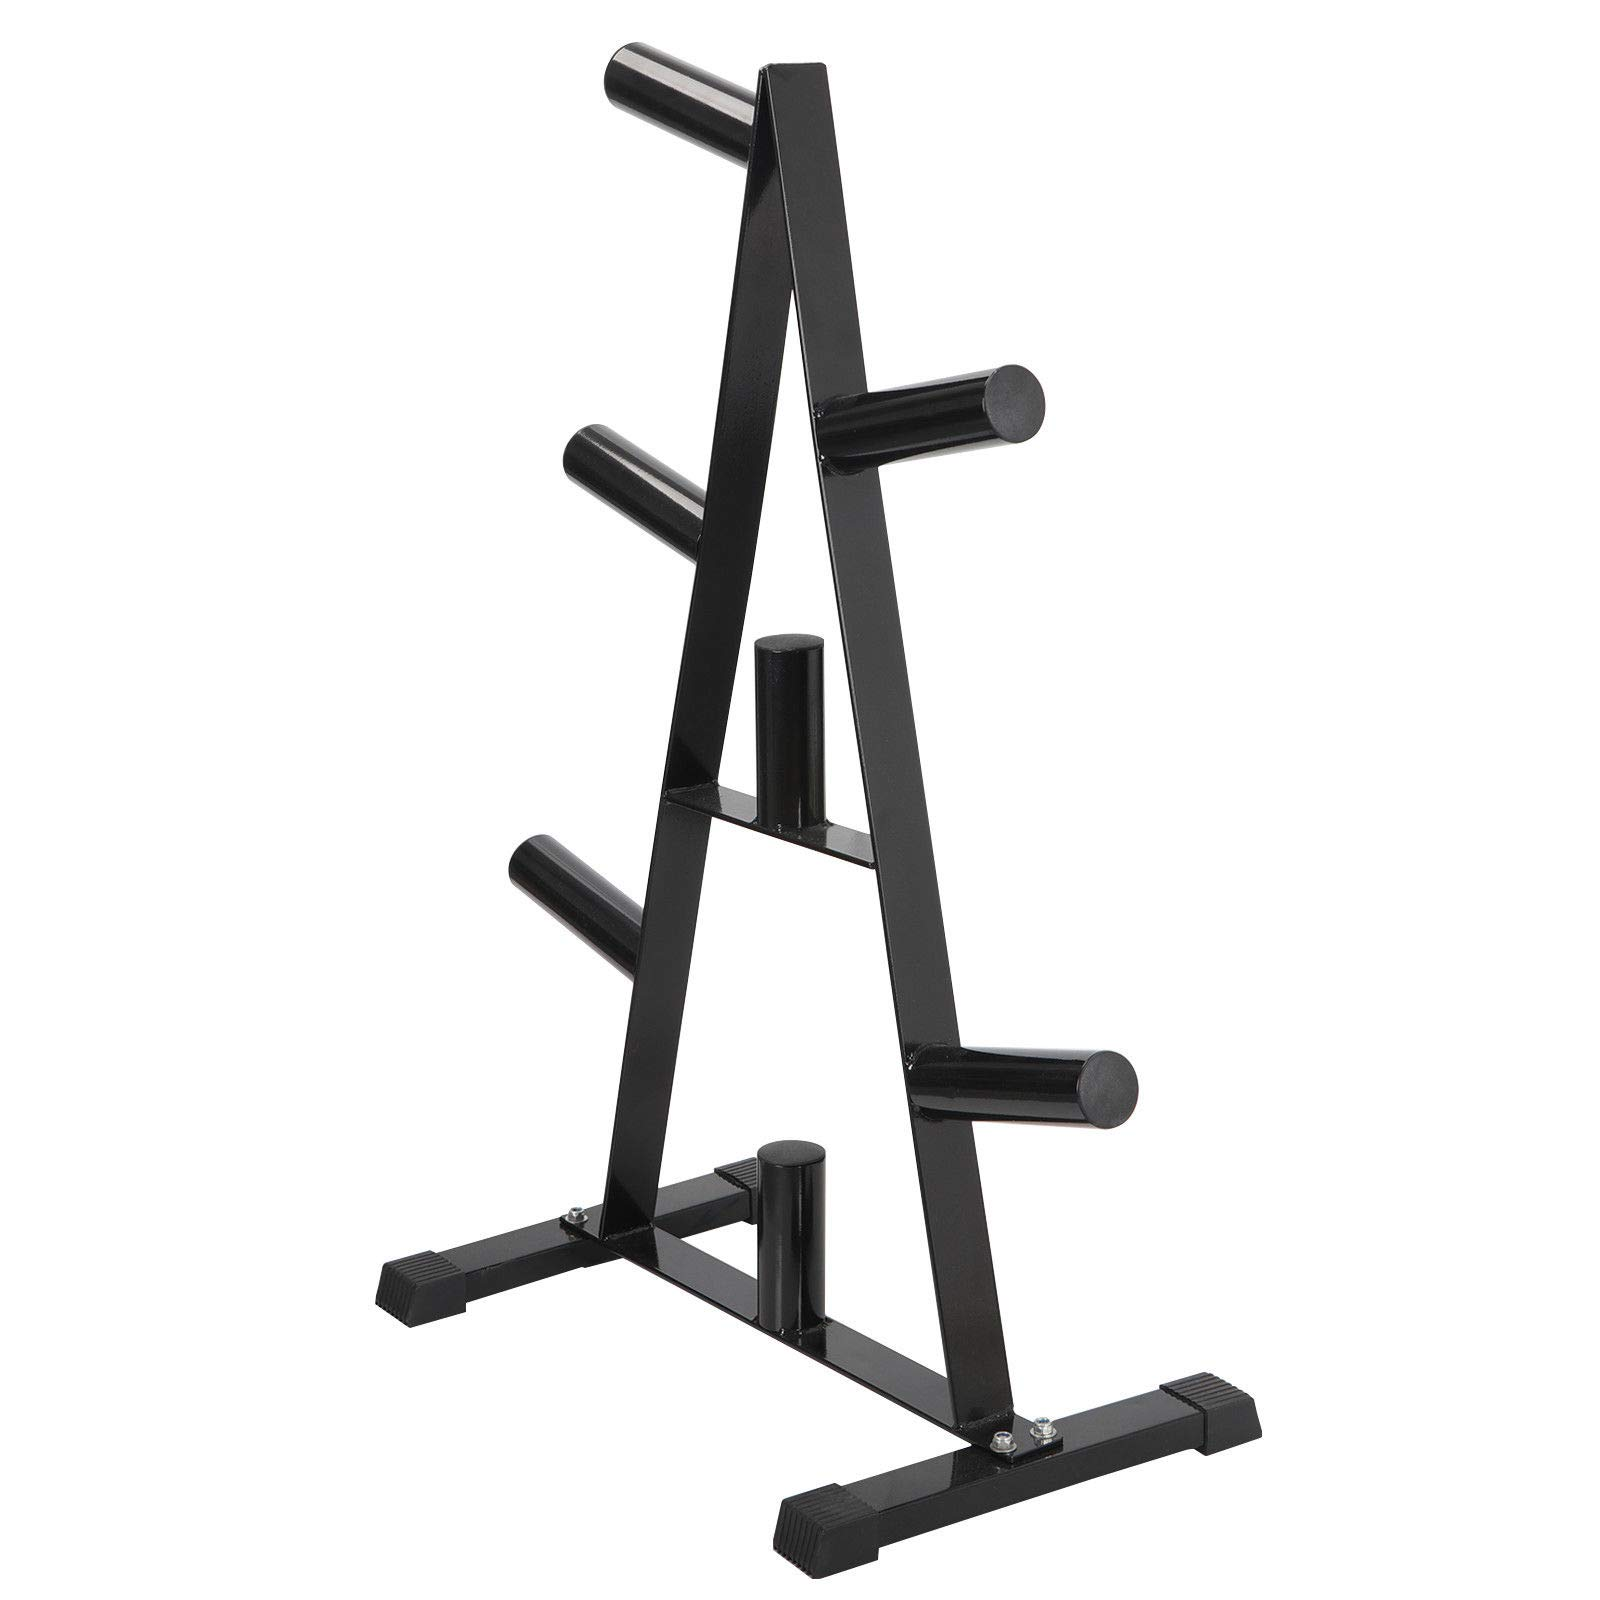 nitipezzo Free Up More Space, Durable Steel Construction and A Compact Design, Fitness Olympic 2'' Weight Plate Rack Tree&Barbell Holder Organizer Stand Storage